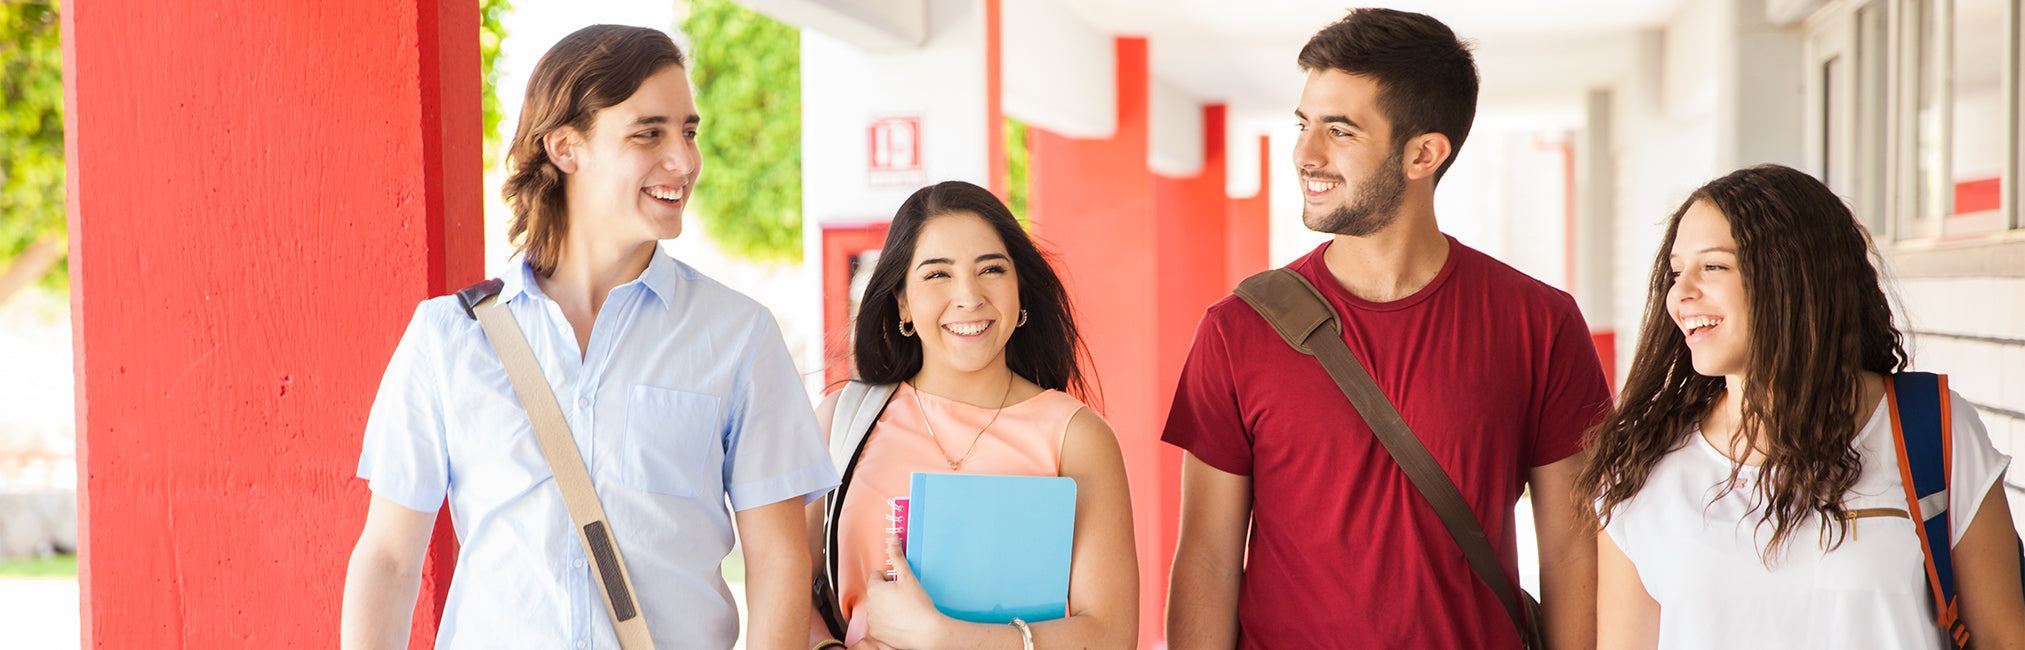 5 Tips for Staying Safe on a College Campus